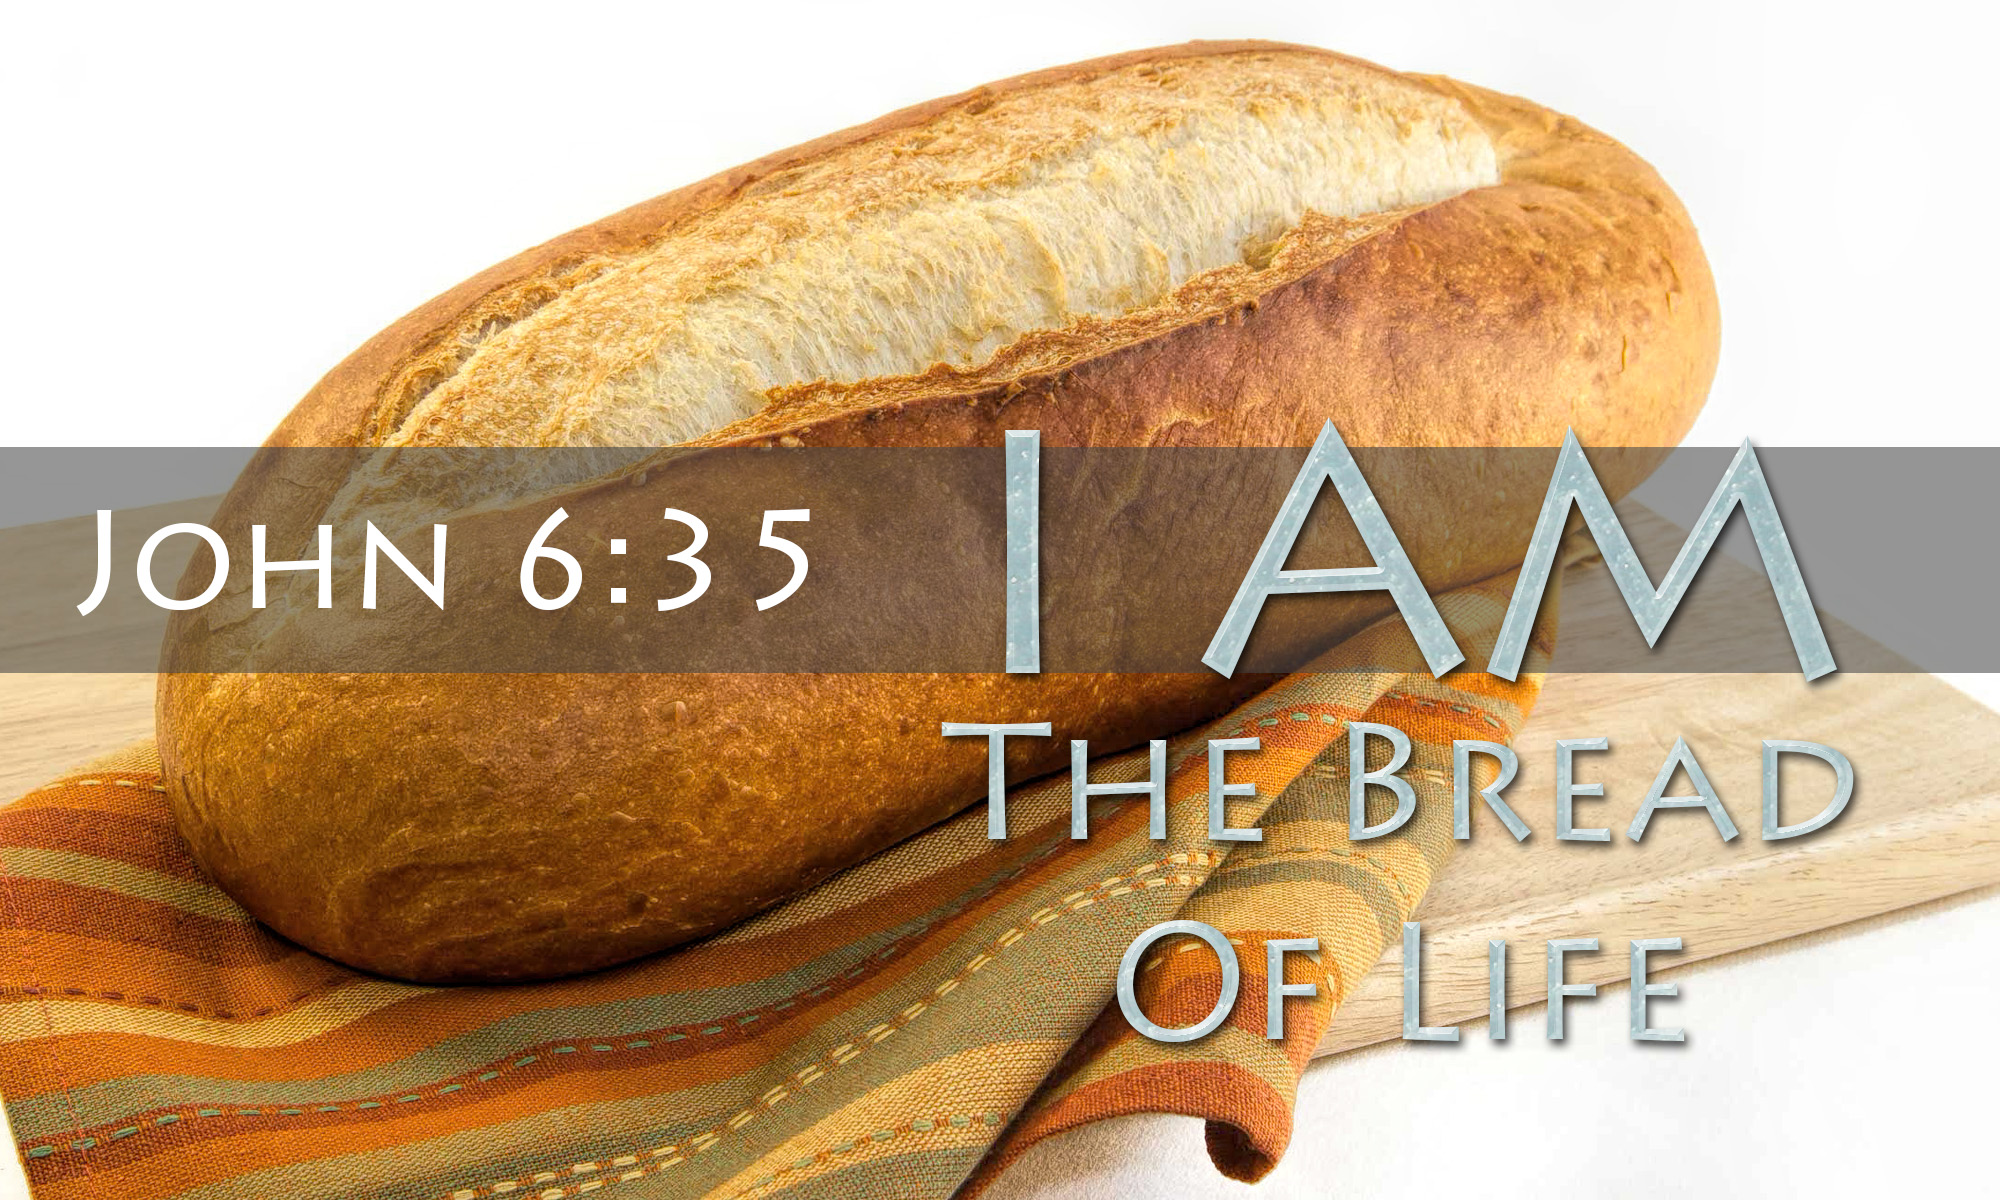 the bread of life an essay Food and its influence an essay assignment food is a necessity for life does the act of breaking bread with someone with whom you're angry ease the tension.